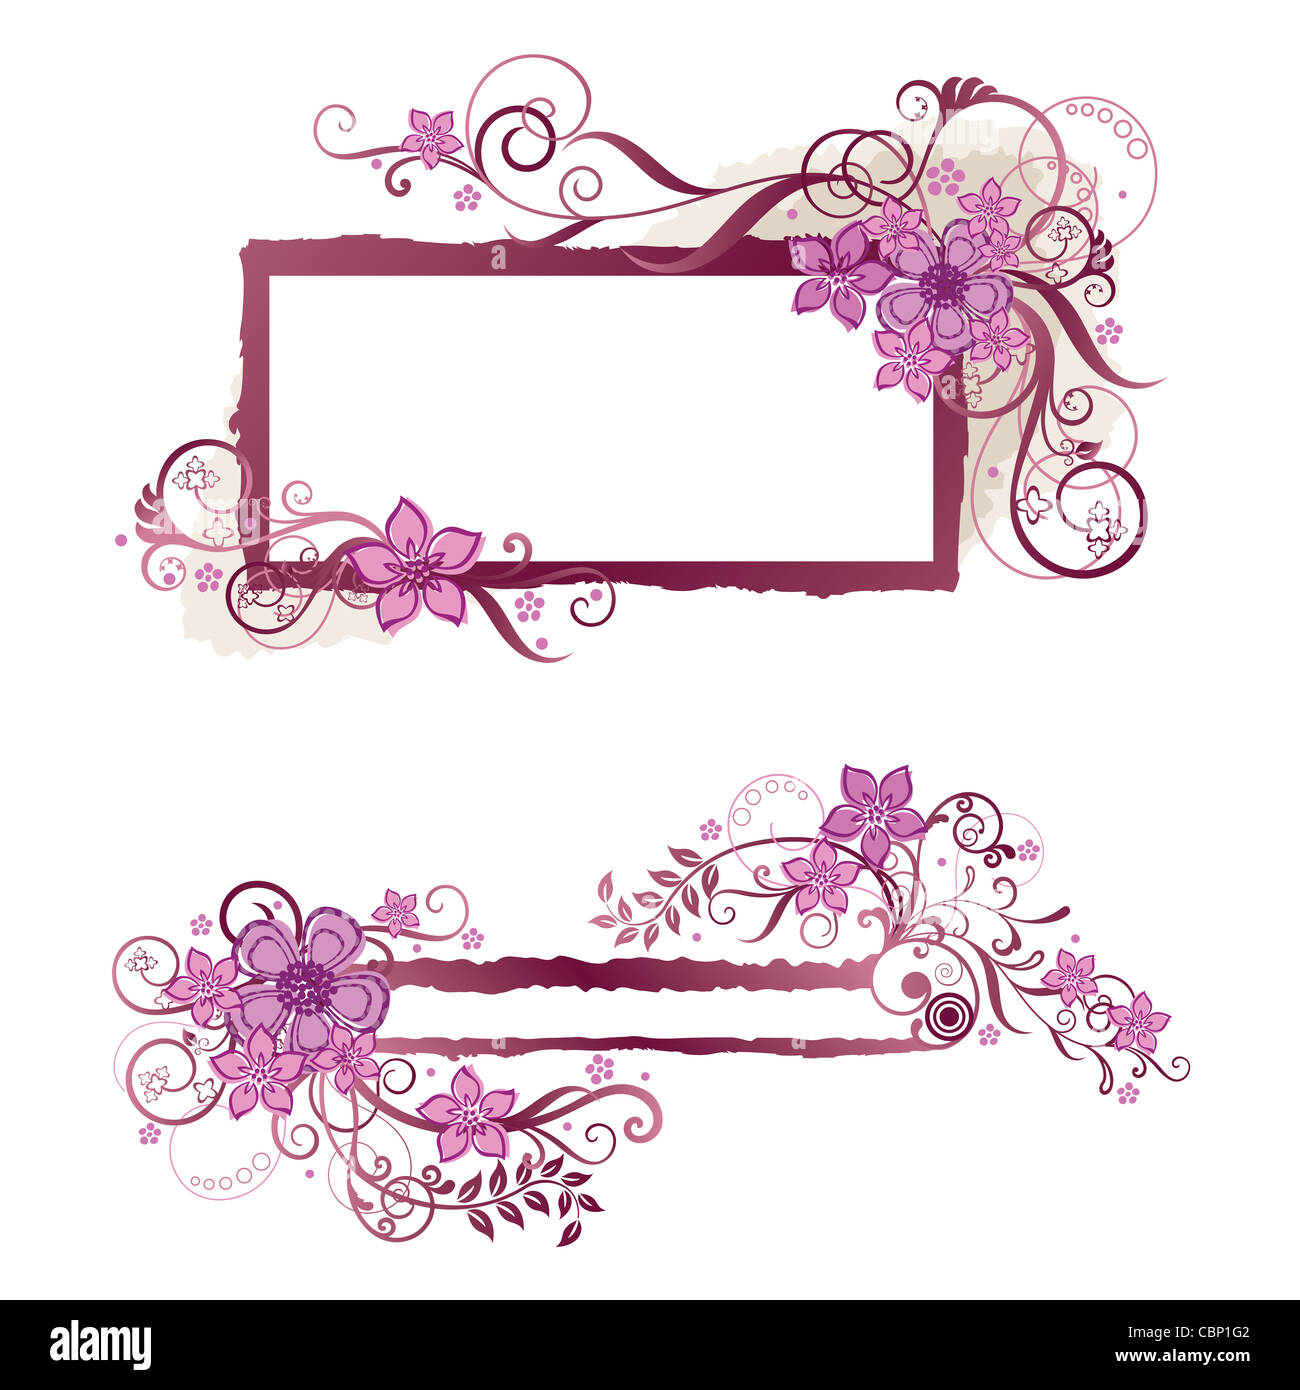 Pink Floral Frame And Banner Design Isolated On White Background